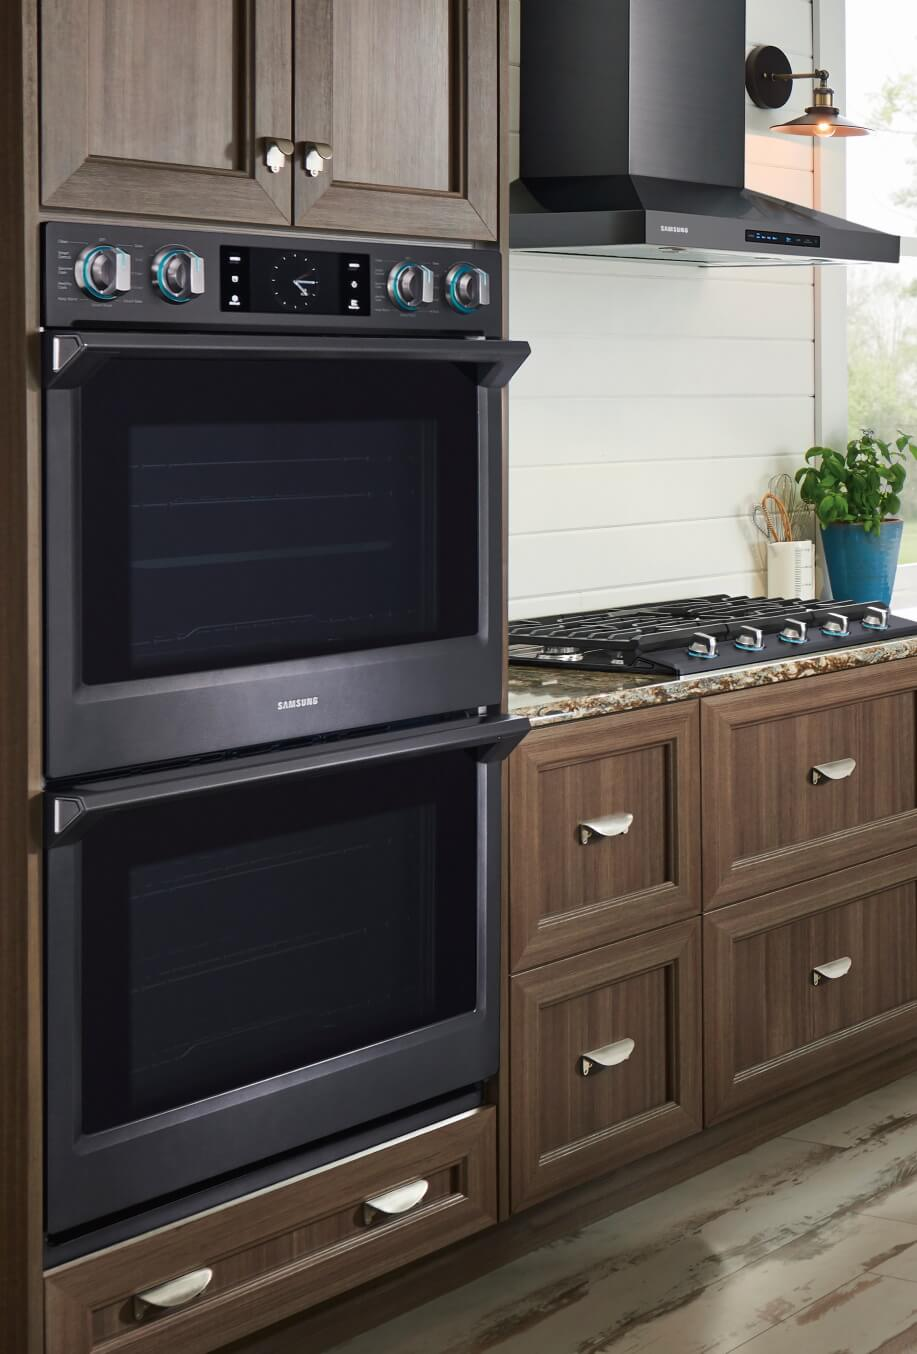 Receive up to a $300 prepaid Mastercard on qualifying Samsung appliances.